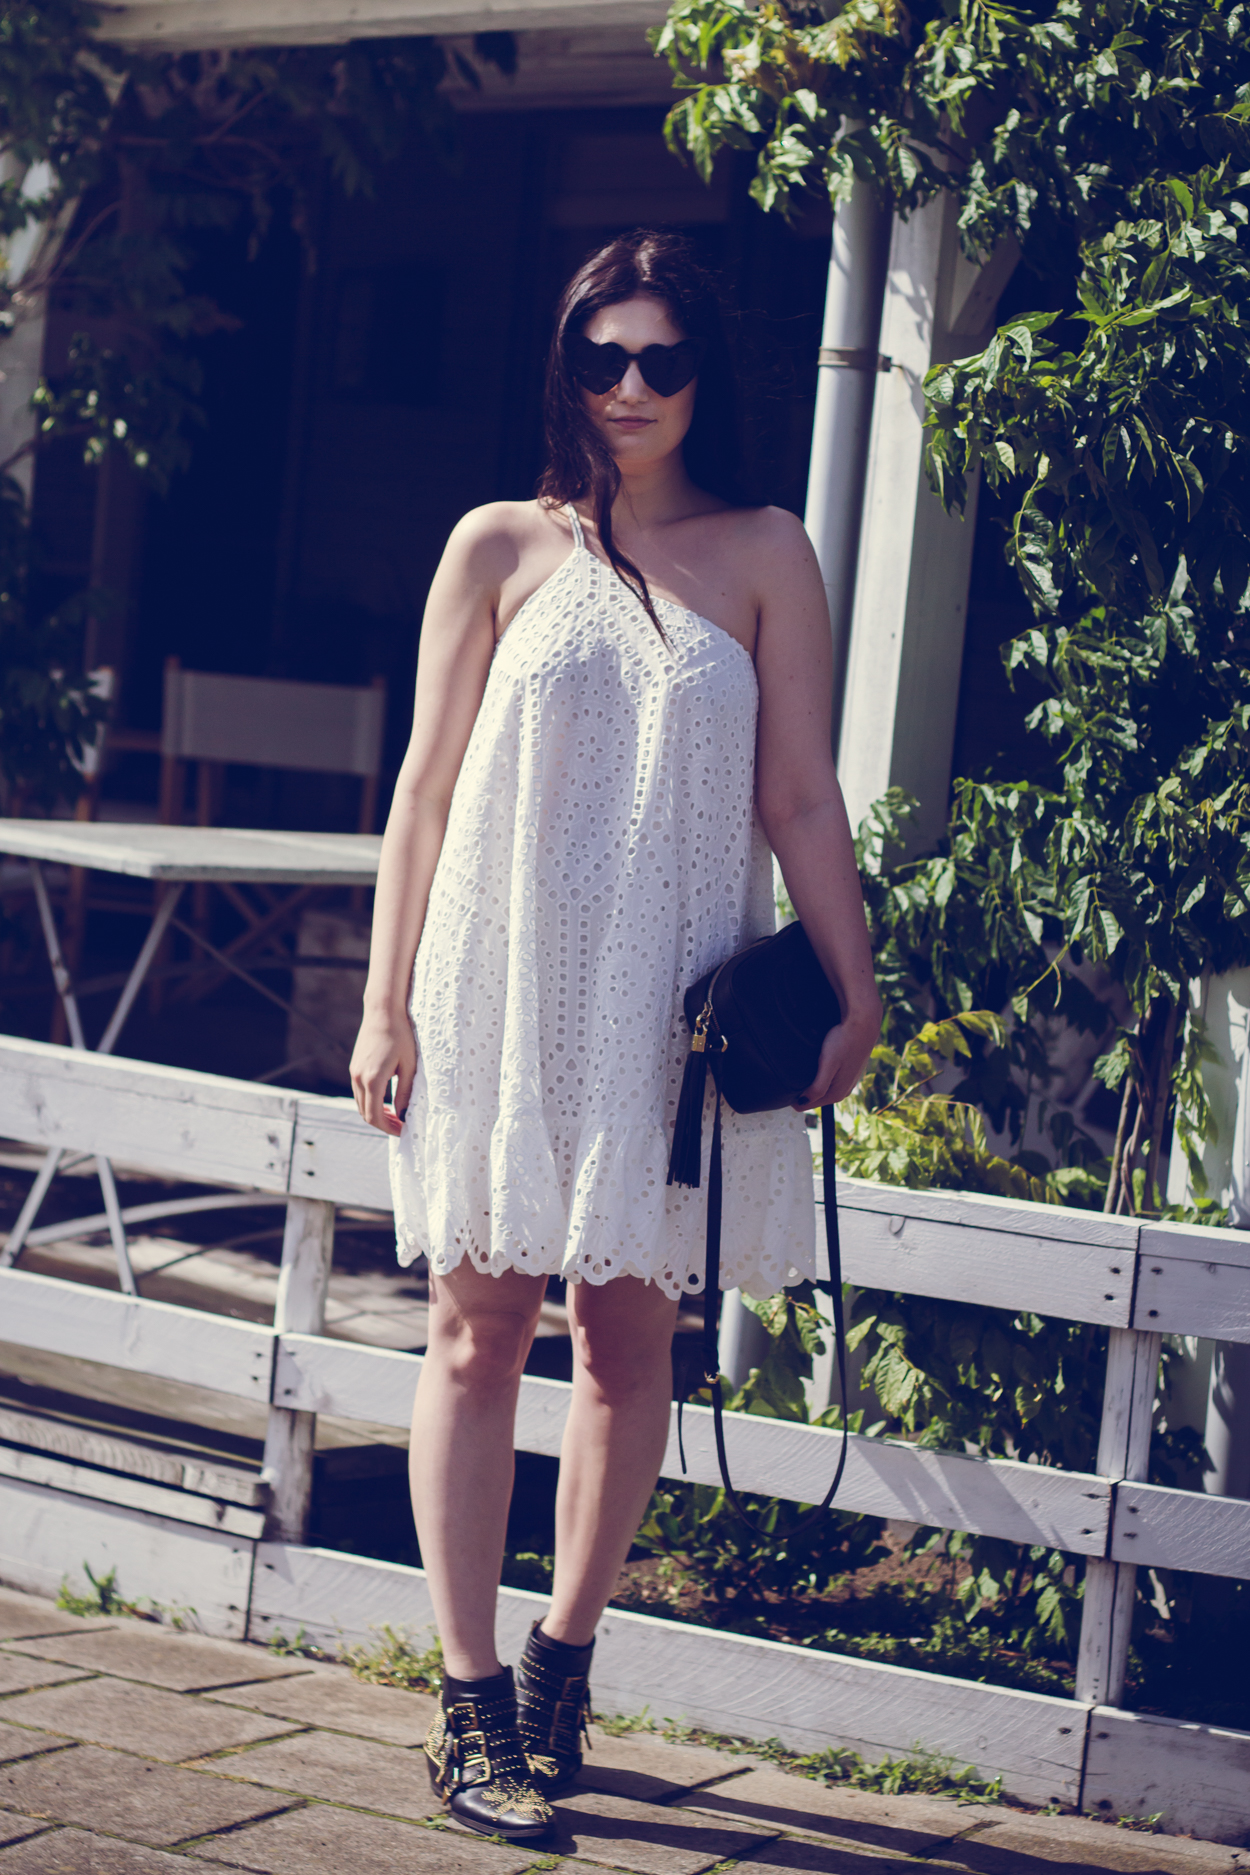 THE CURATED WARDROBE: THE SUMMER SALE ITEMS TO ADD TO YOUR CAPSULE WARDROBE | THE CHIC ITALIAN | With sale items from H&M, & Other Stories, shopbop.com and Net-A-Porter